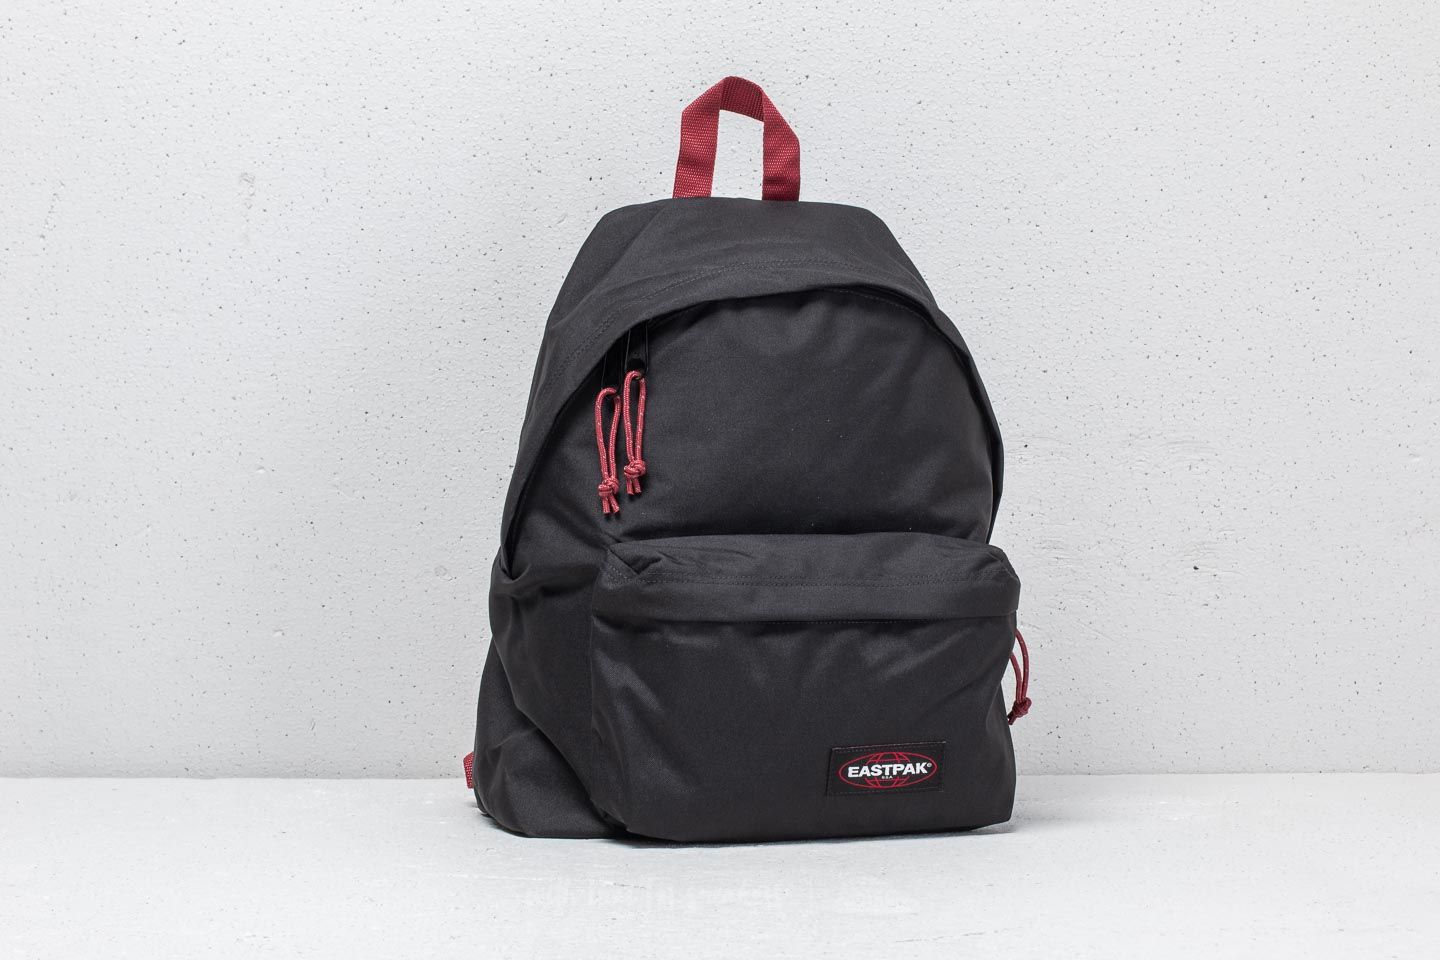 Eastpak Padded Pak R Backpack Black  Red